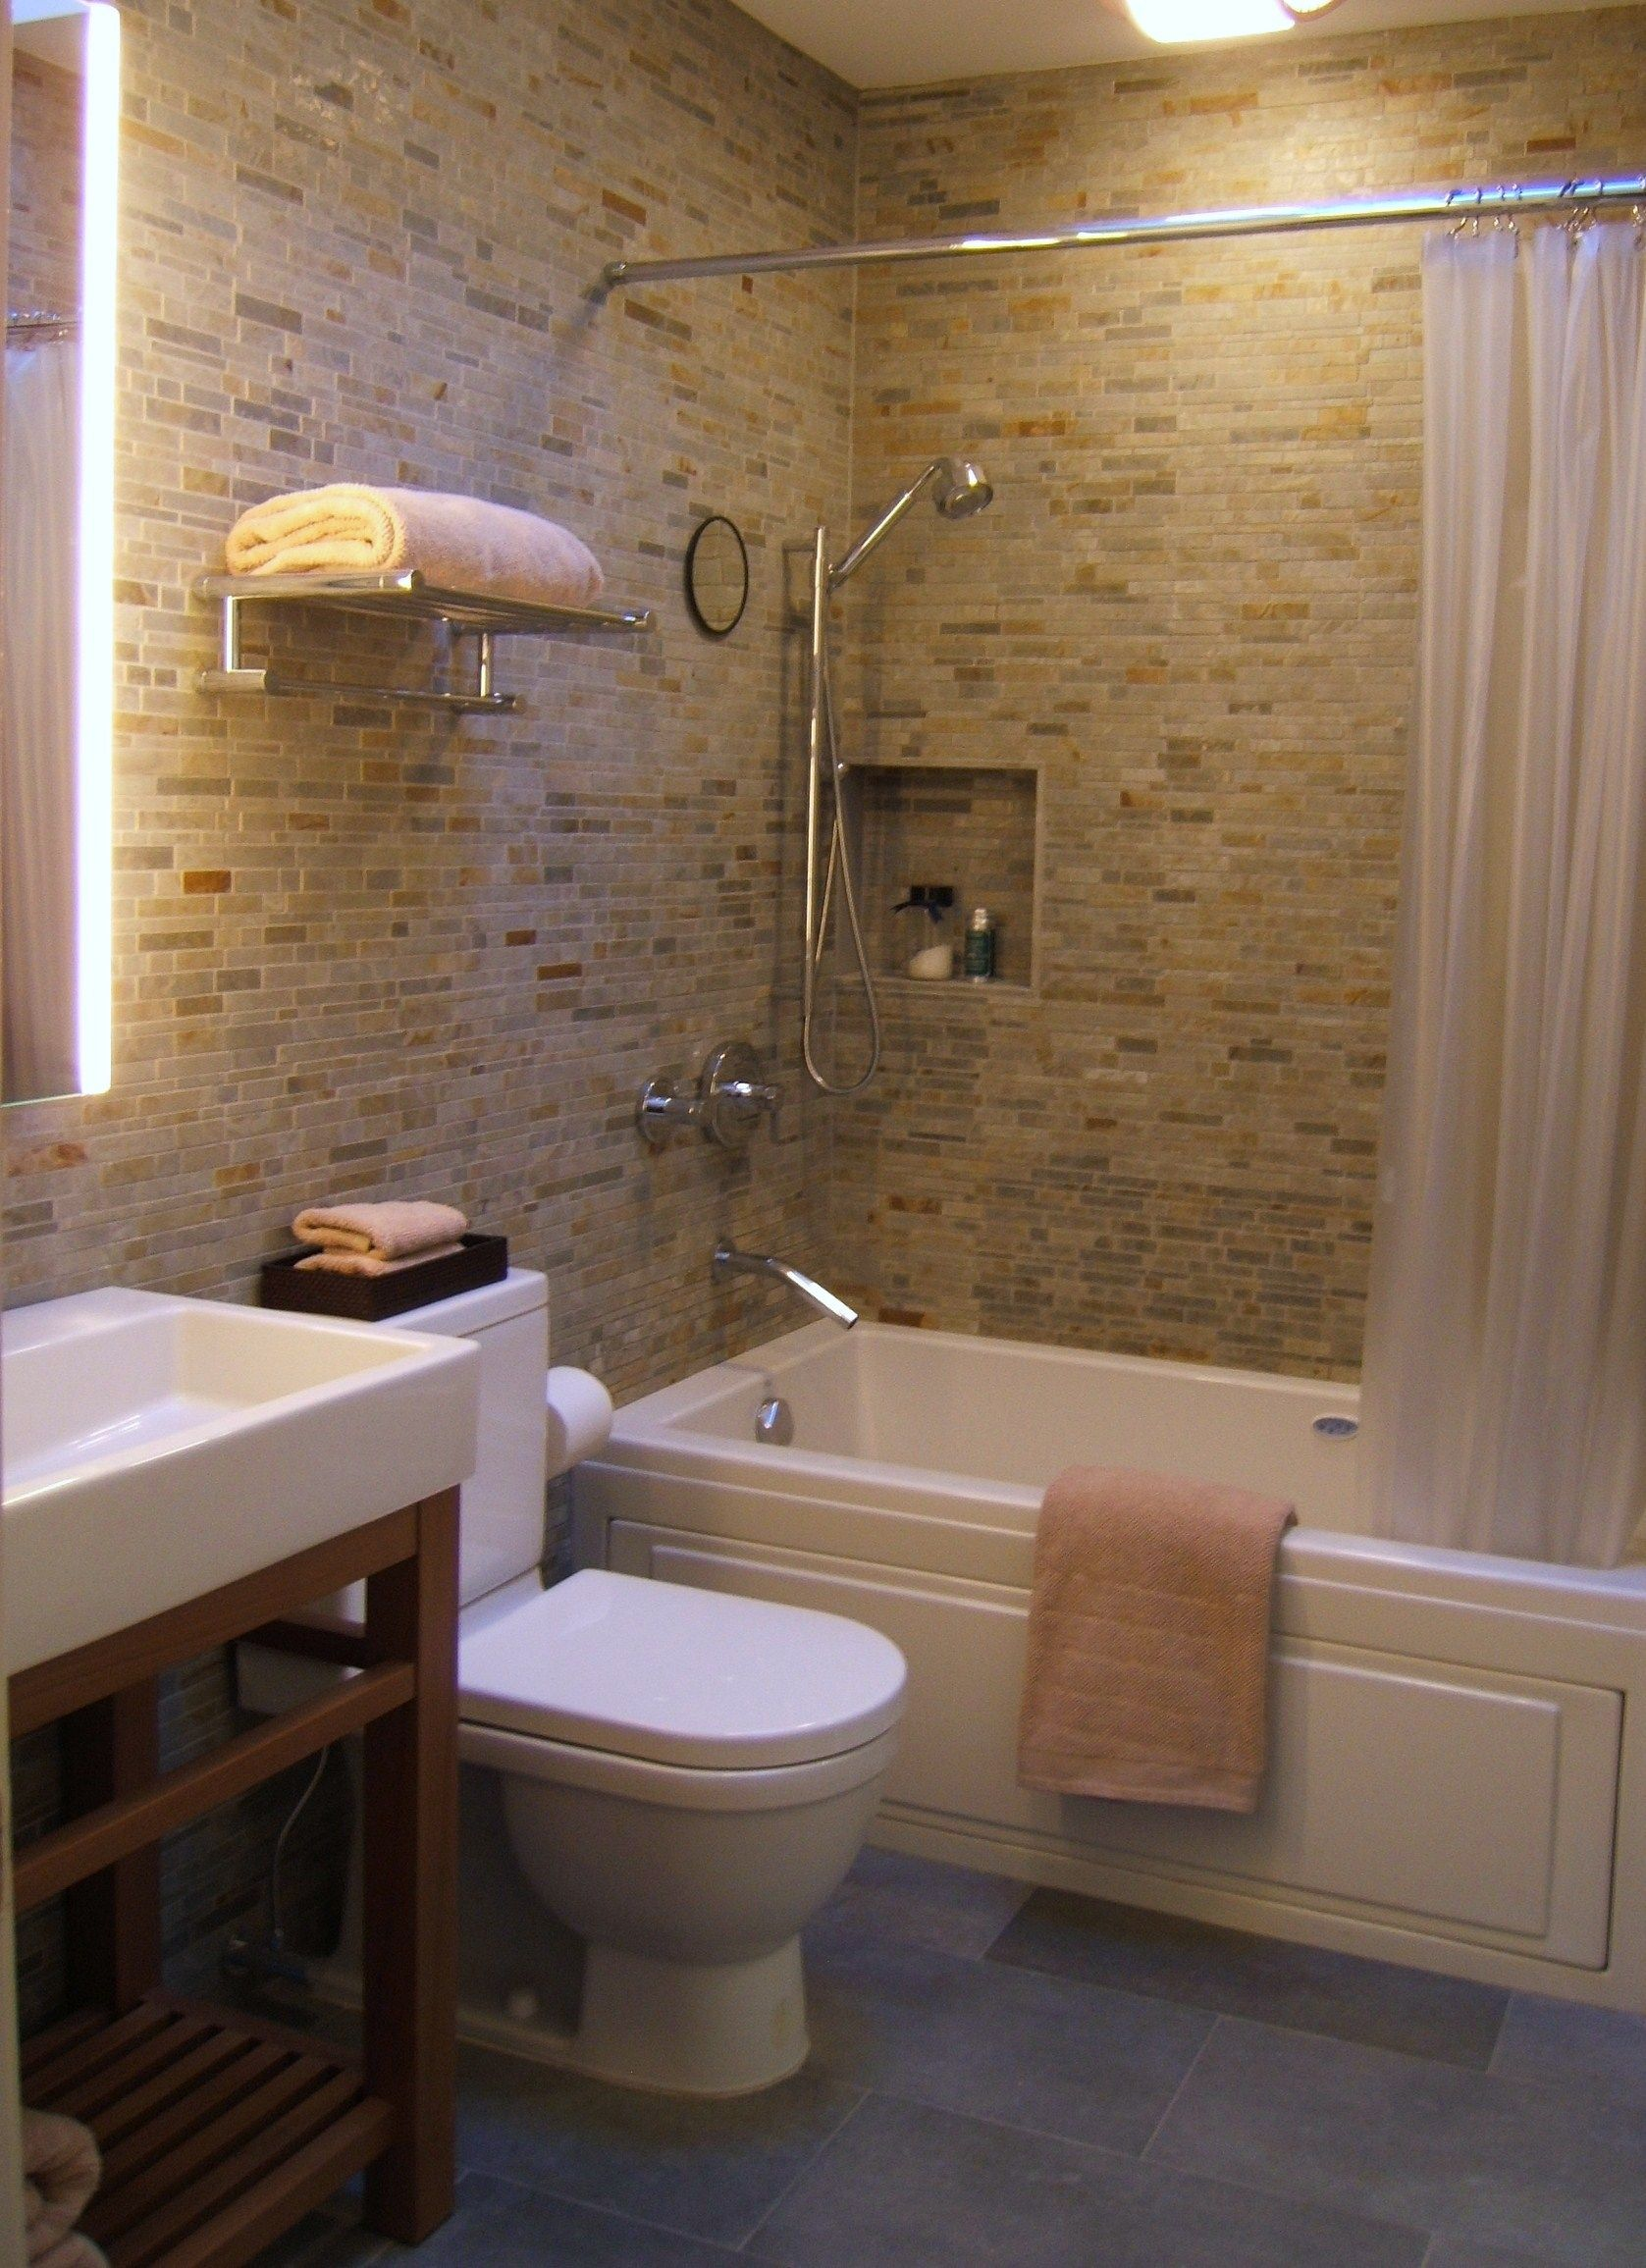 Small bathroom designs south africa small bath for Photos of small bathrooms